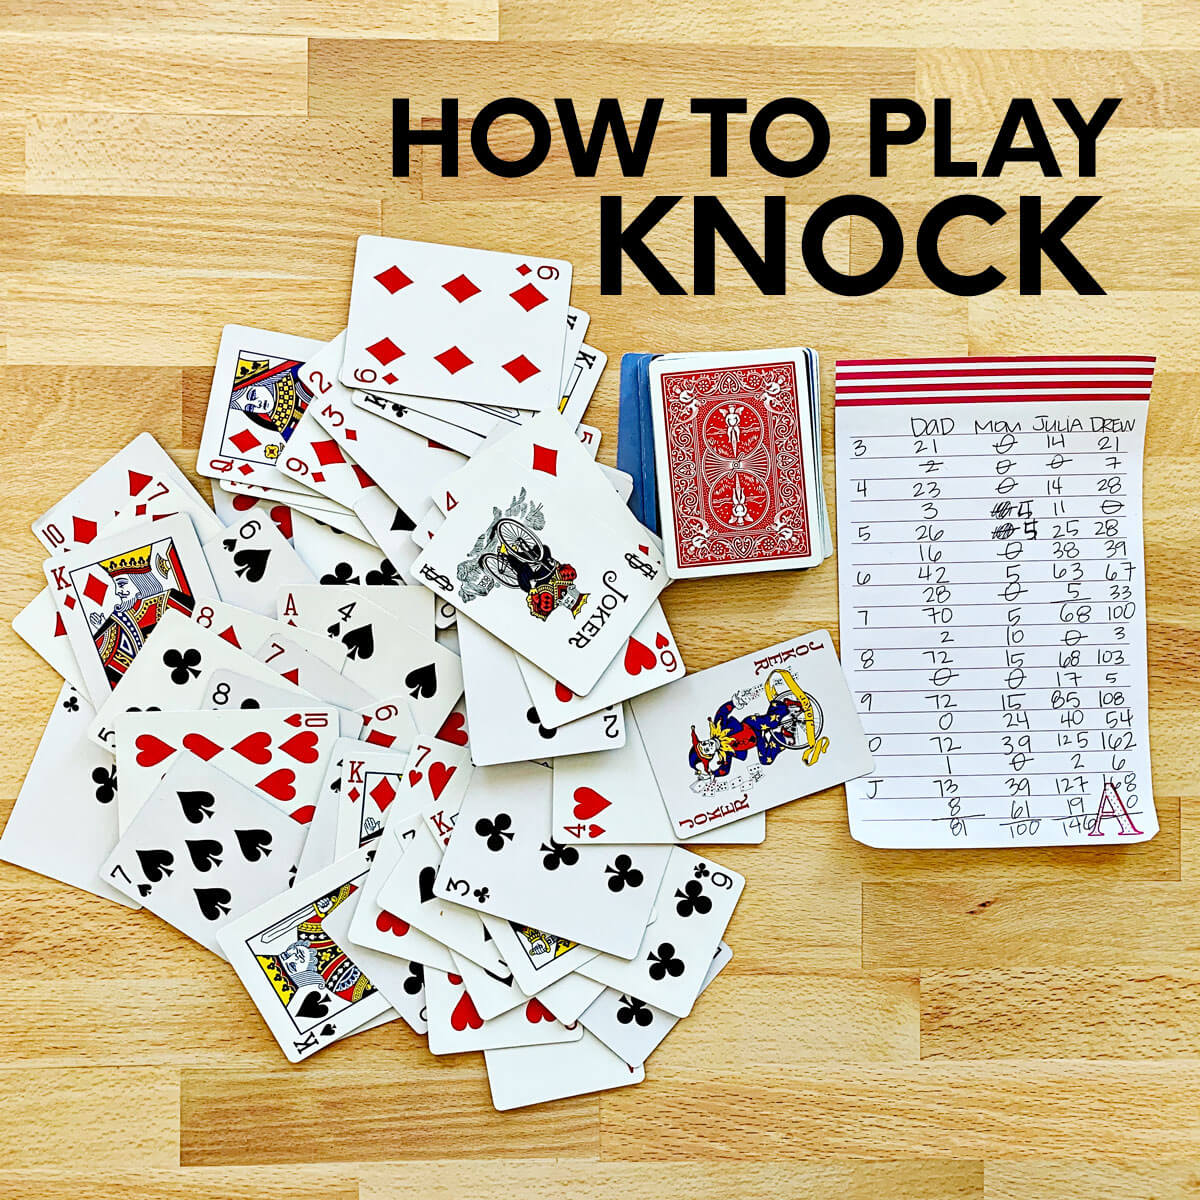 How to Play Knock-Fun card game